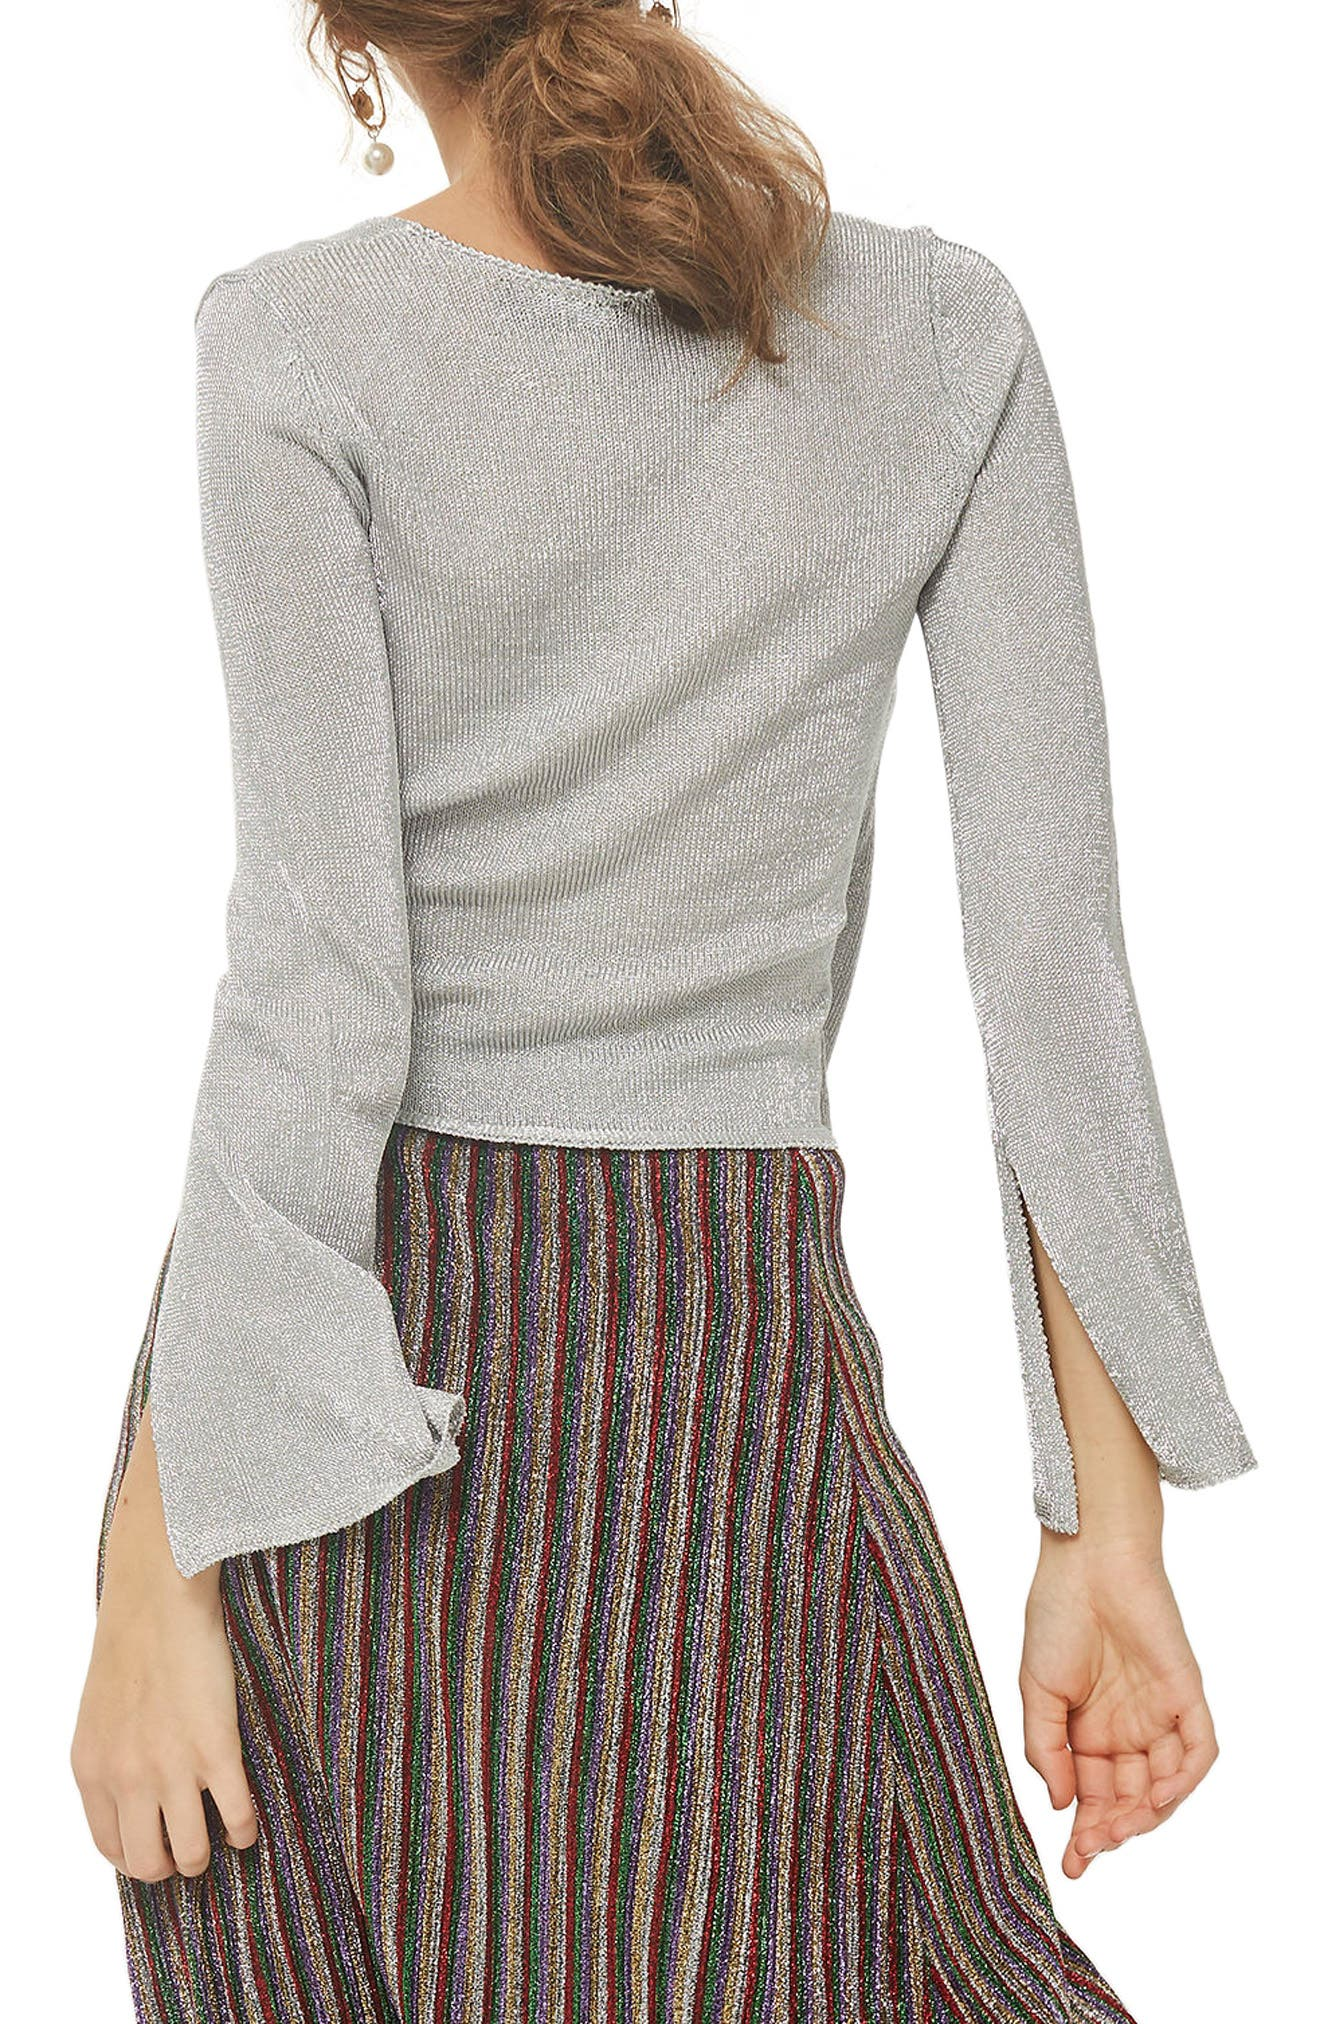 Metal Yarn Wrap Knit Top,                             Alternate thumbnail 2, color,                             040